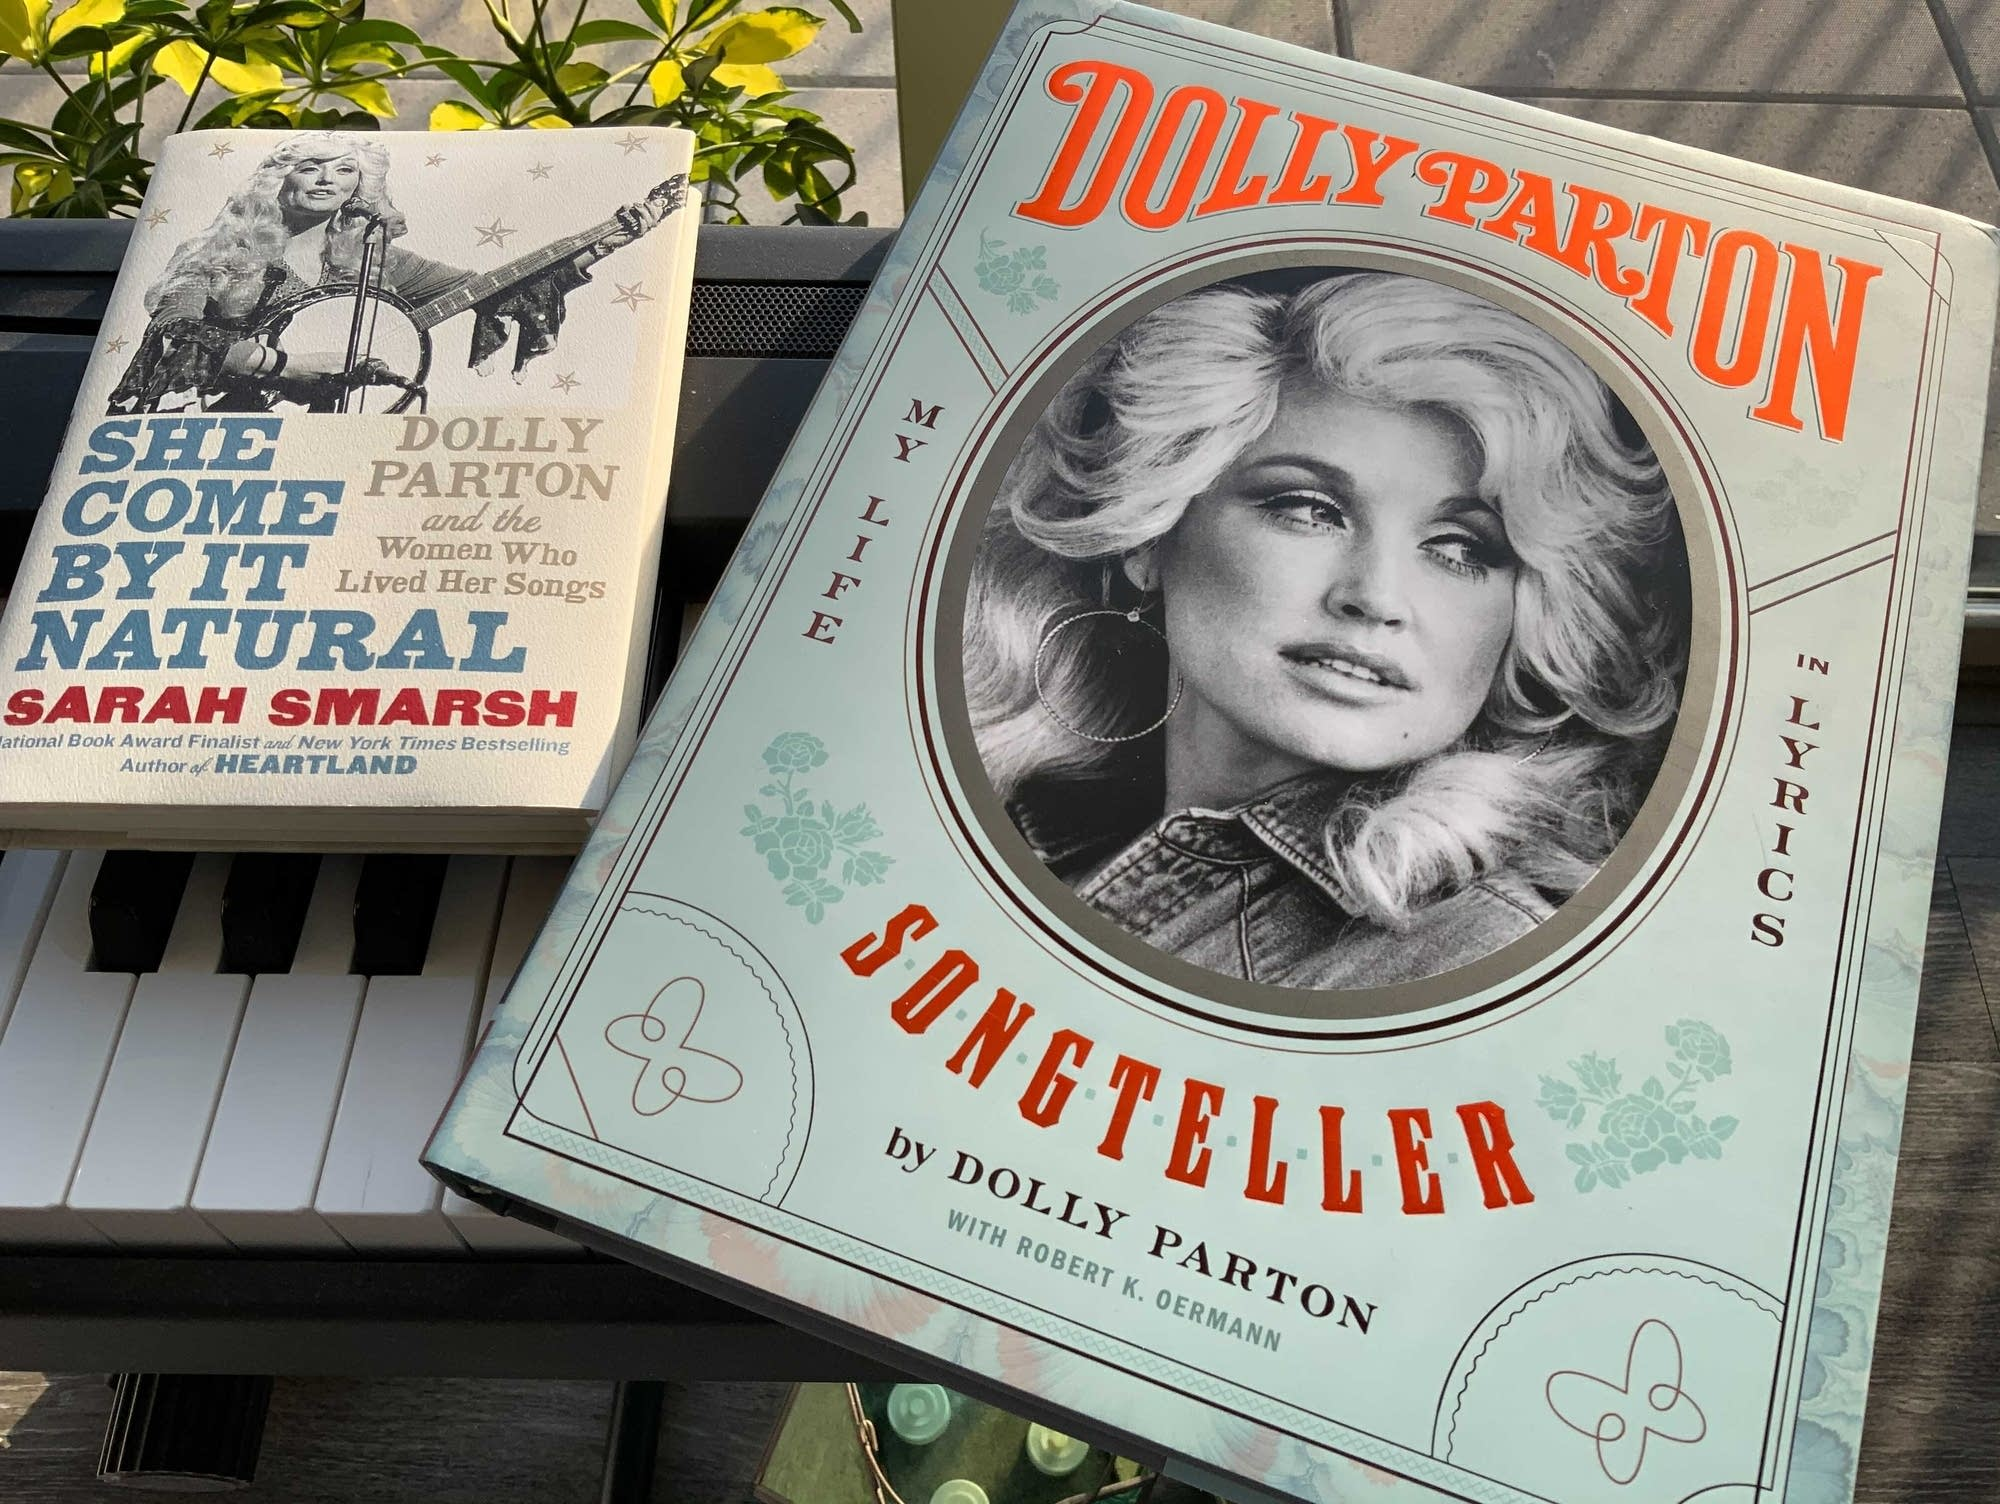 Two new books about Dolly Parton.